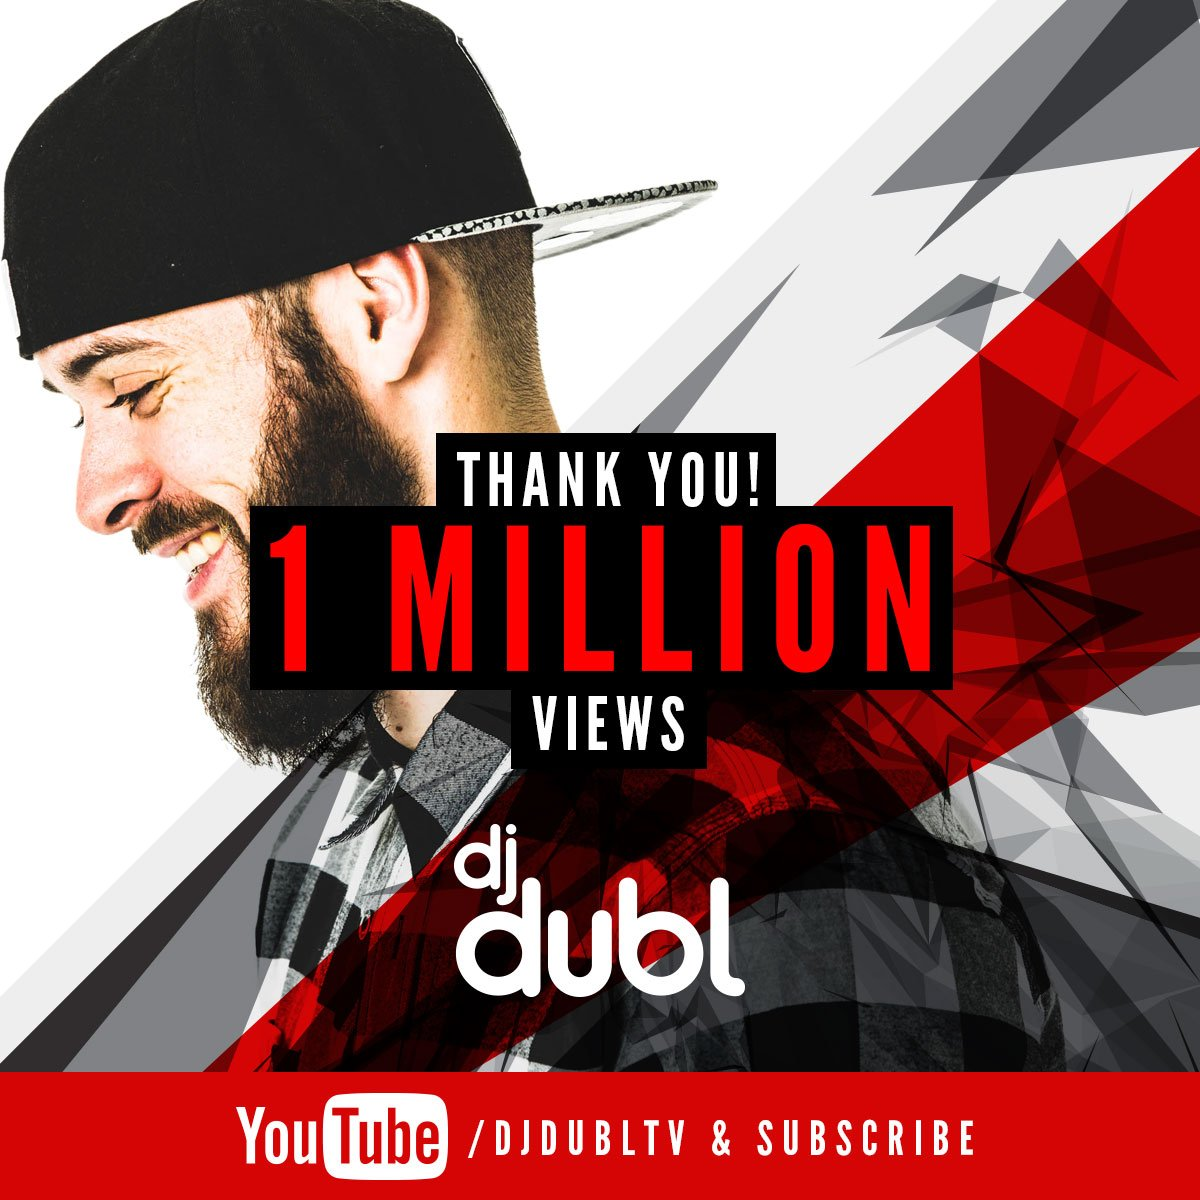 IT'S OFFICIAL!!!   #DJDUBLTV has now hit it's first 1,000,000 views! THANK YOU to everyone that's ever pressed play! https://t.co/ZpkAxoBMpl